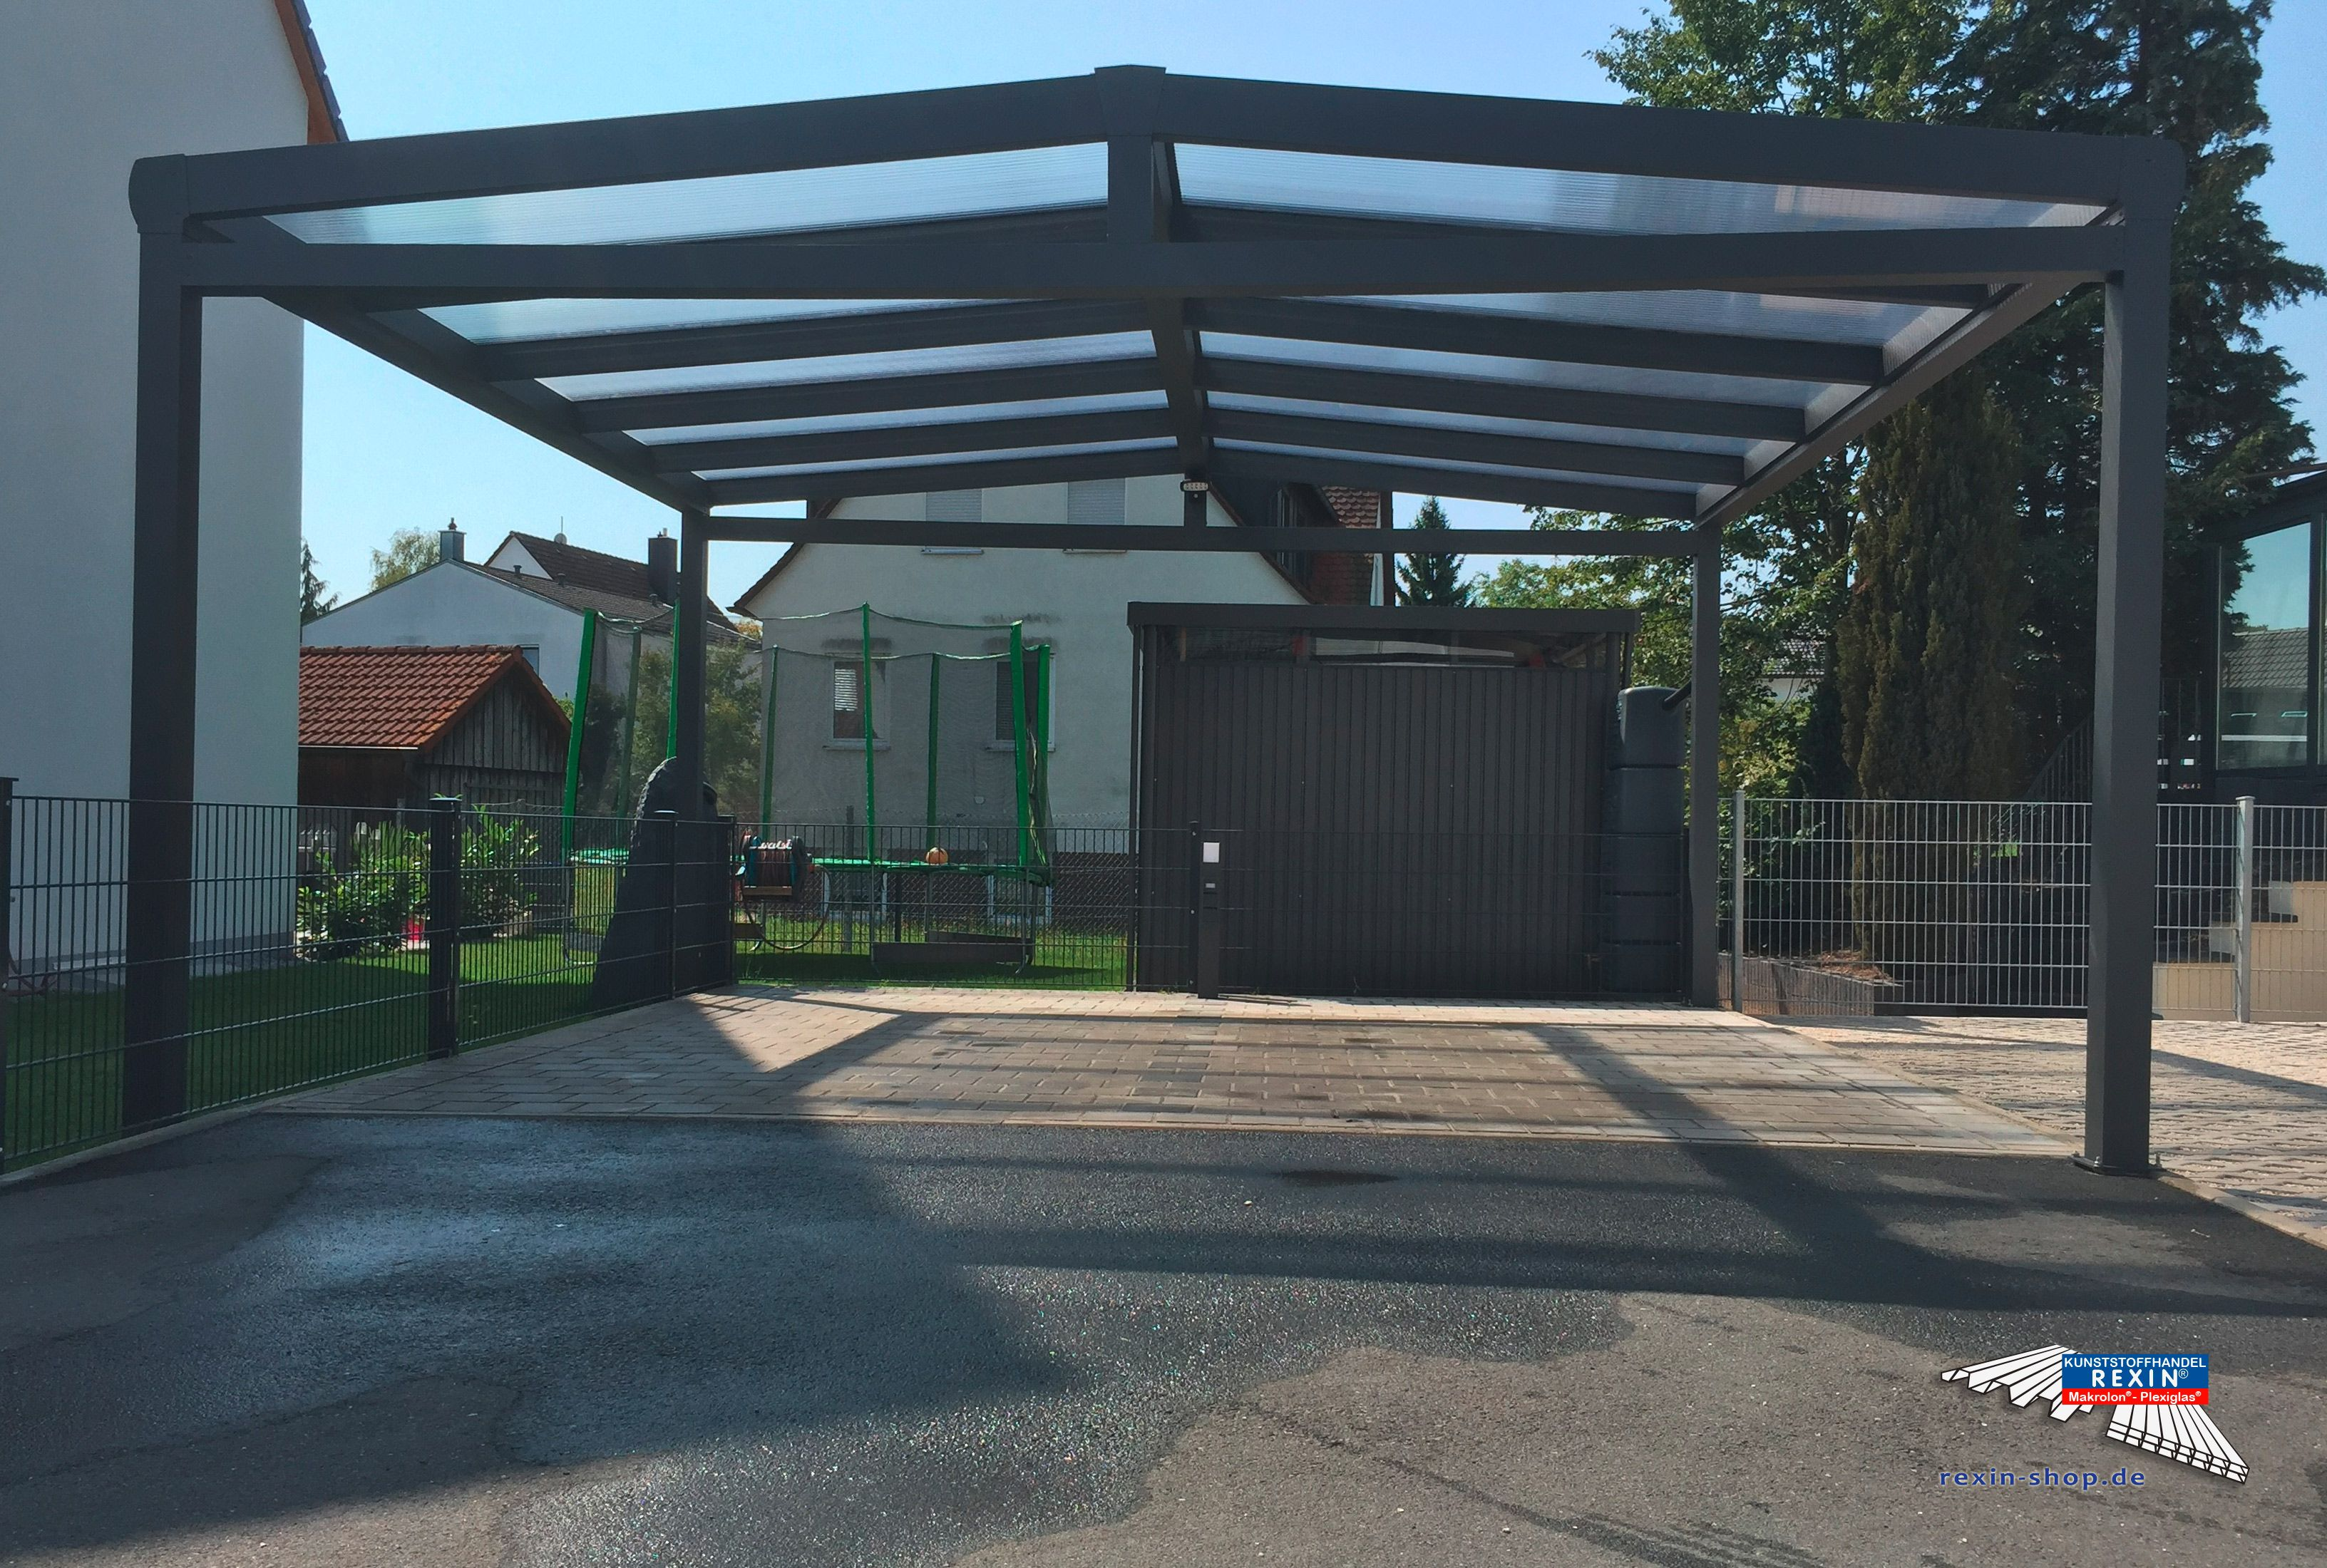 Beliebt Alu-Carport der Marke REXOport 5,12m x 5,06 m in Anthrazit. Unter DN56